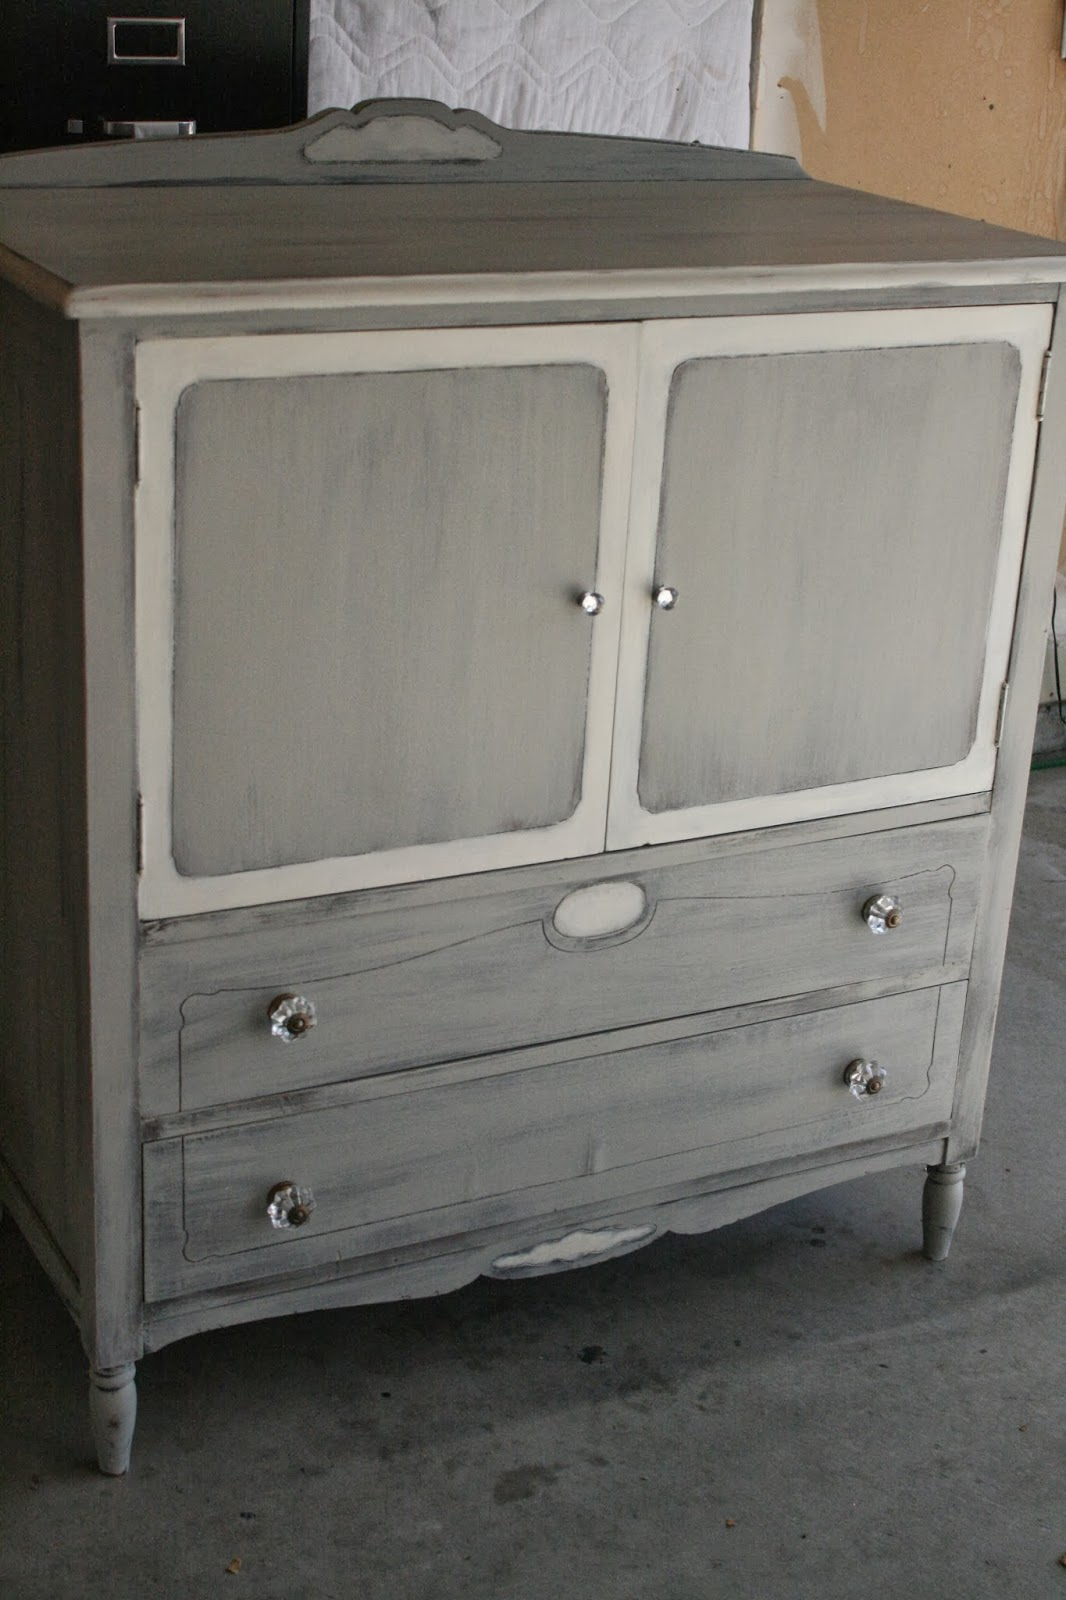 Craigslist Furniture Santa Cruz Ca